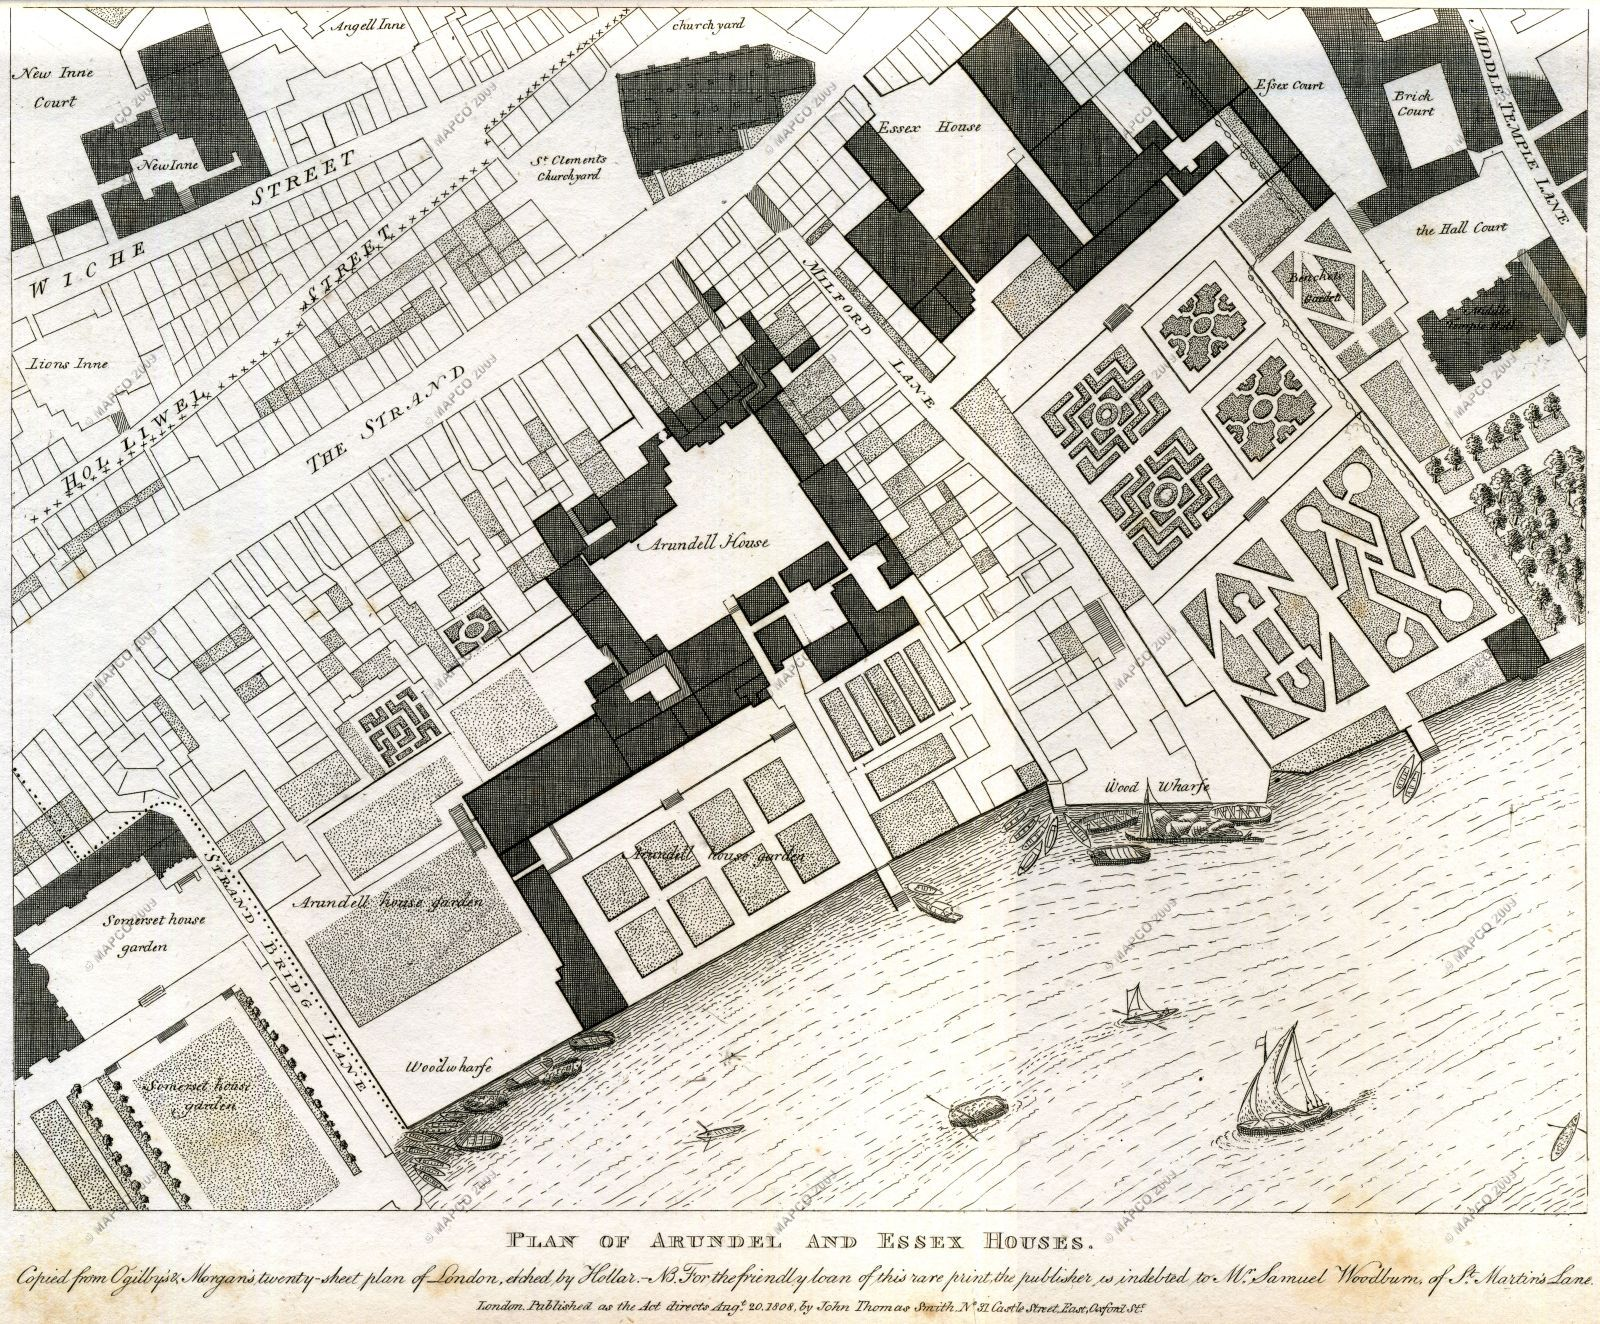 Plan of arundel and essex houses 1677 for Classic house old street london